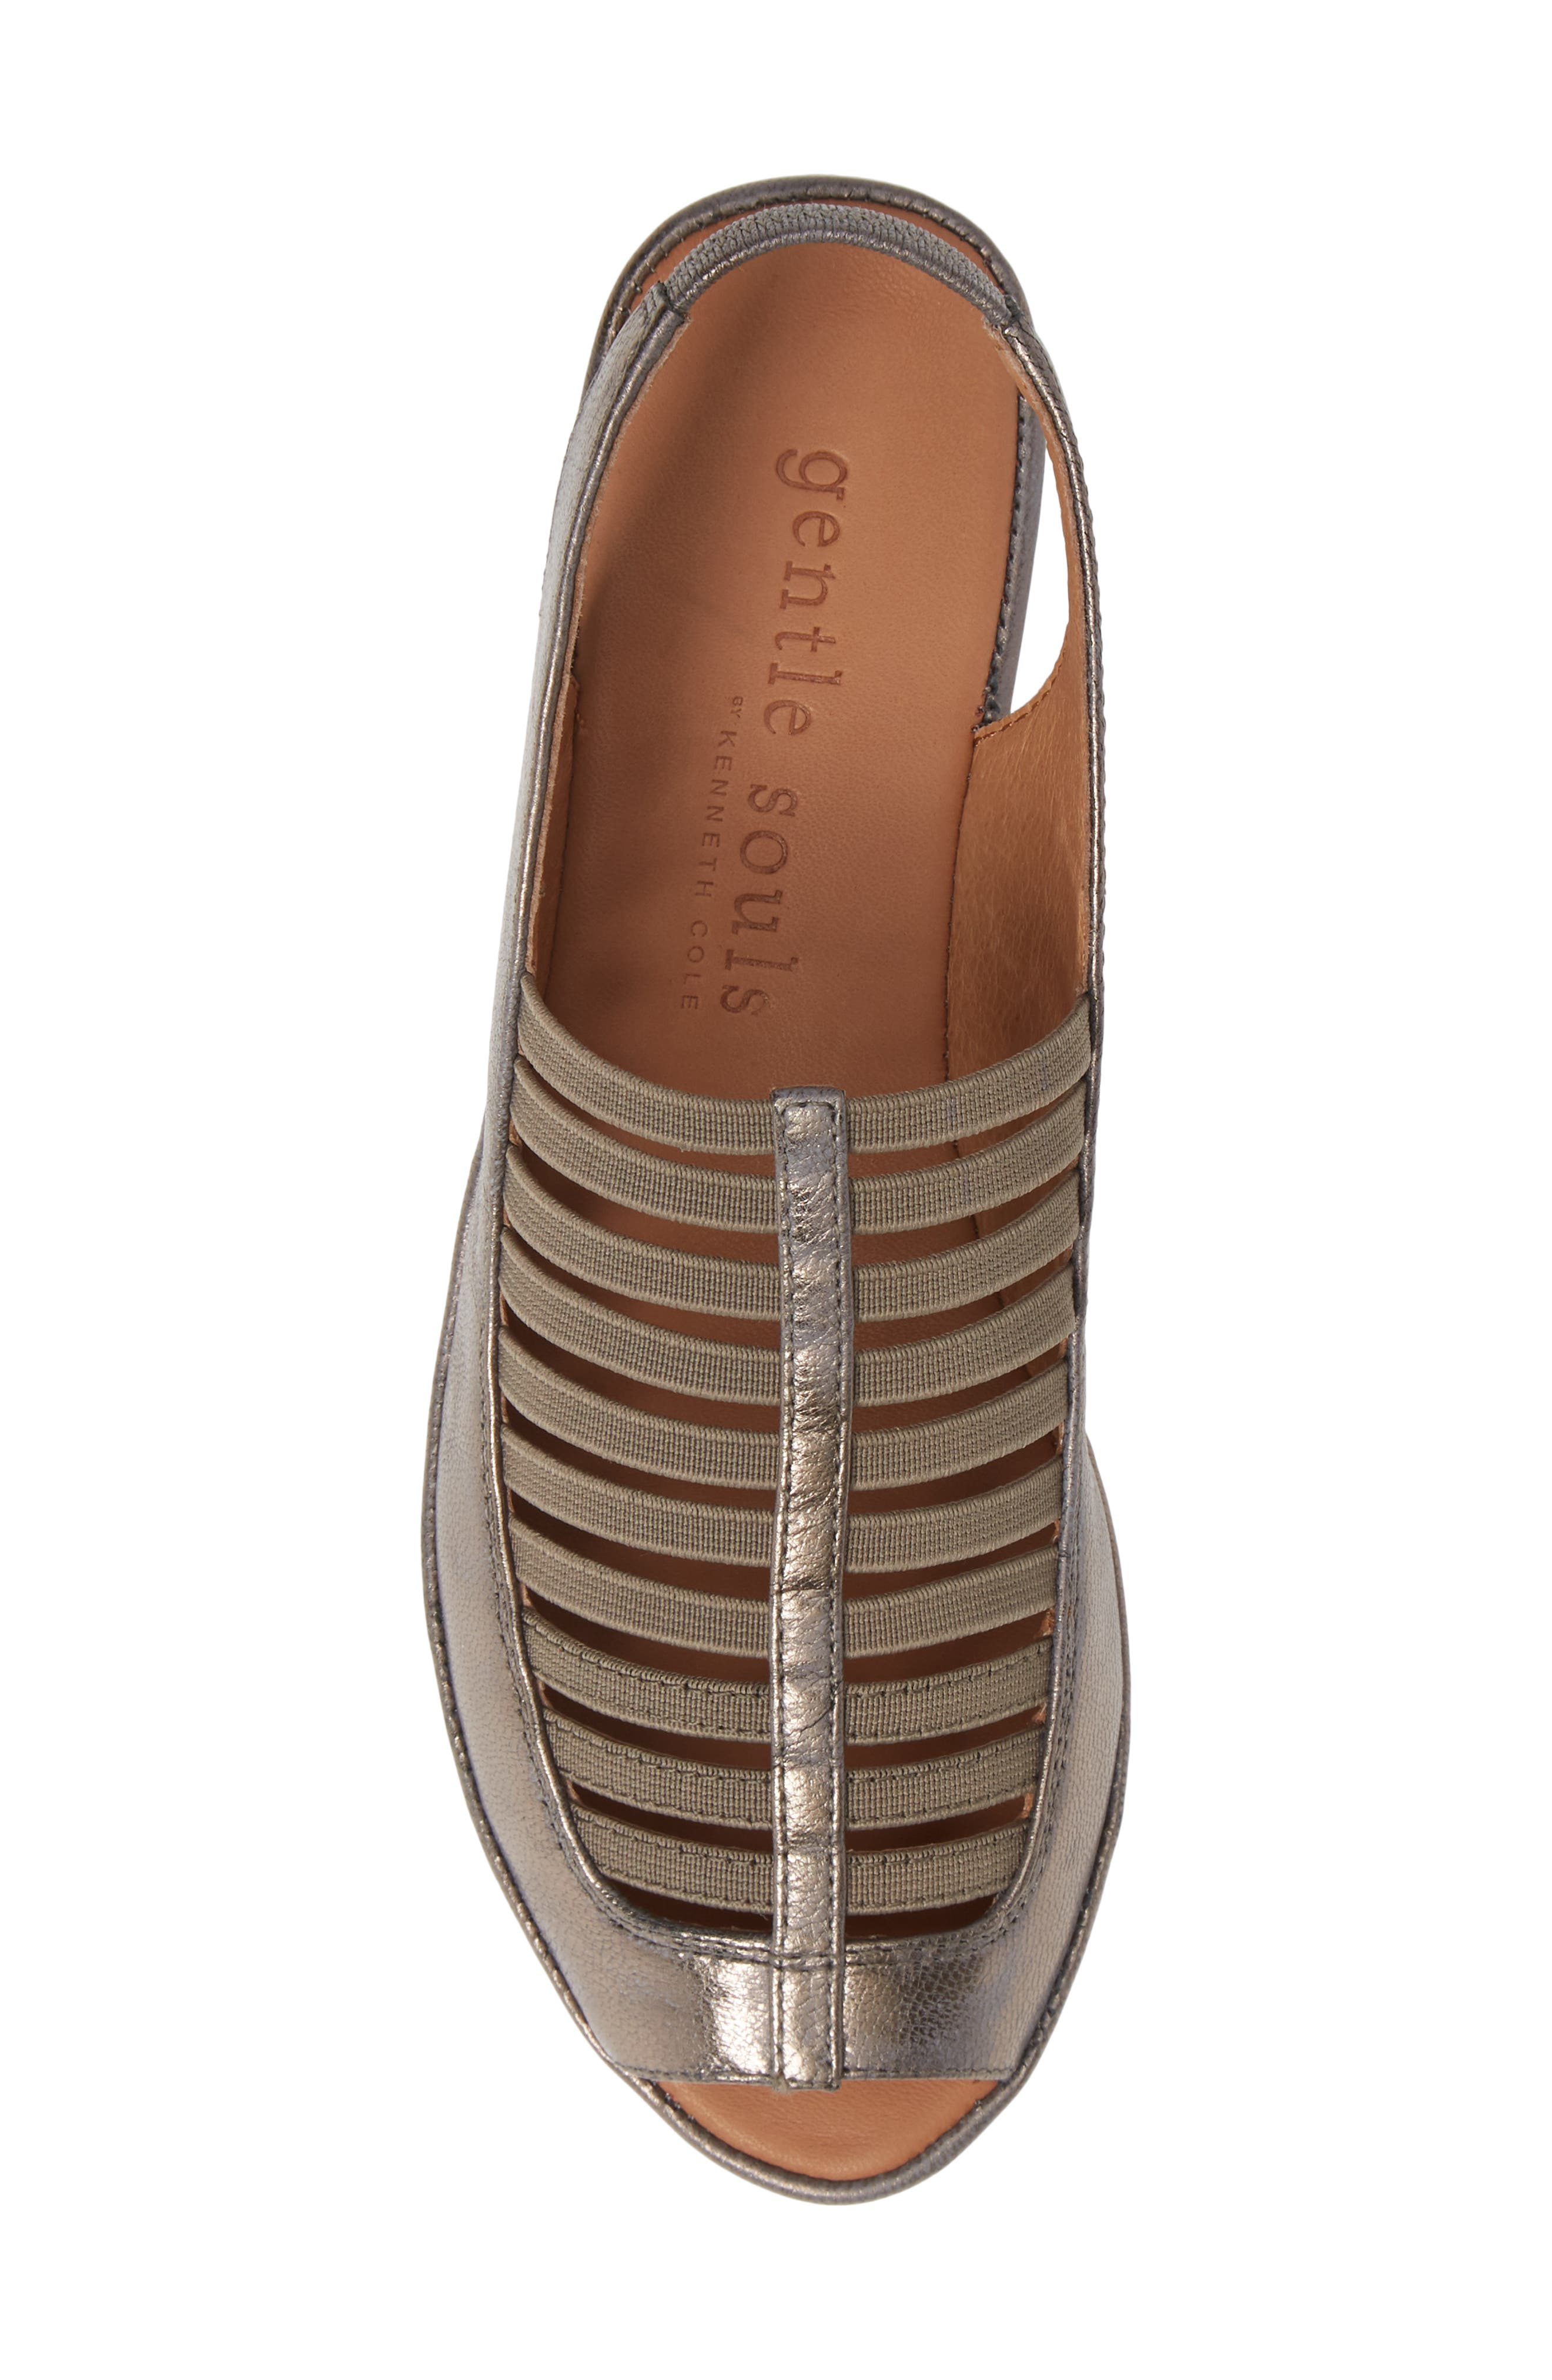 GENTLE SOULS BY KENNETH COLE, 'Lee' Sandal, Alternate thumbnail 5, color, PEWTER METALLIC LEATHER